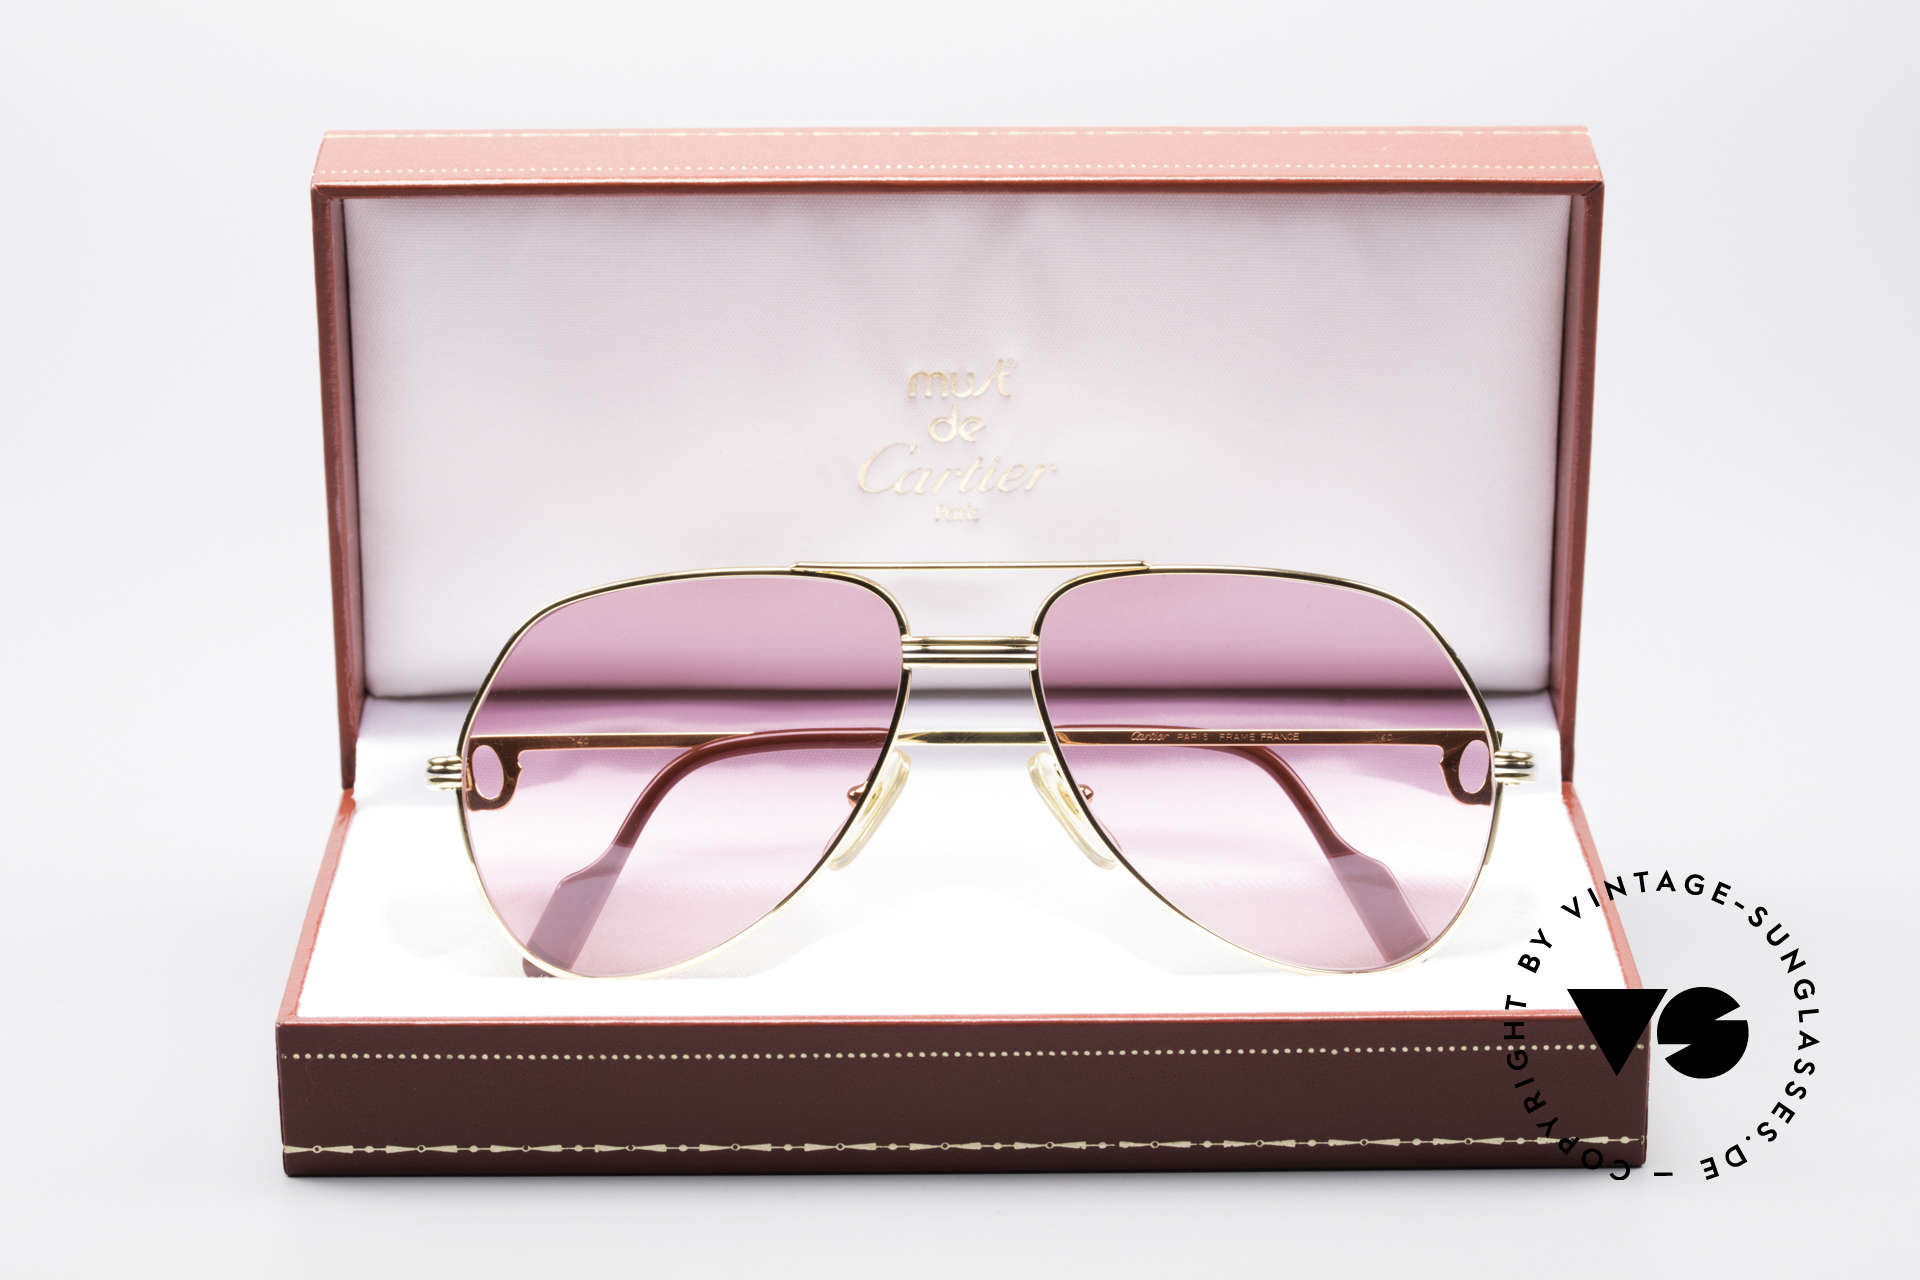 Cartier Vendome LC - M Michael Douglas 80's Shades, luxury frame (22ct) with new pink lenses & orig. packing, Made for Men and Women